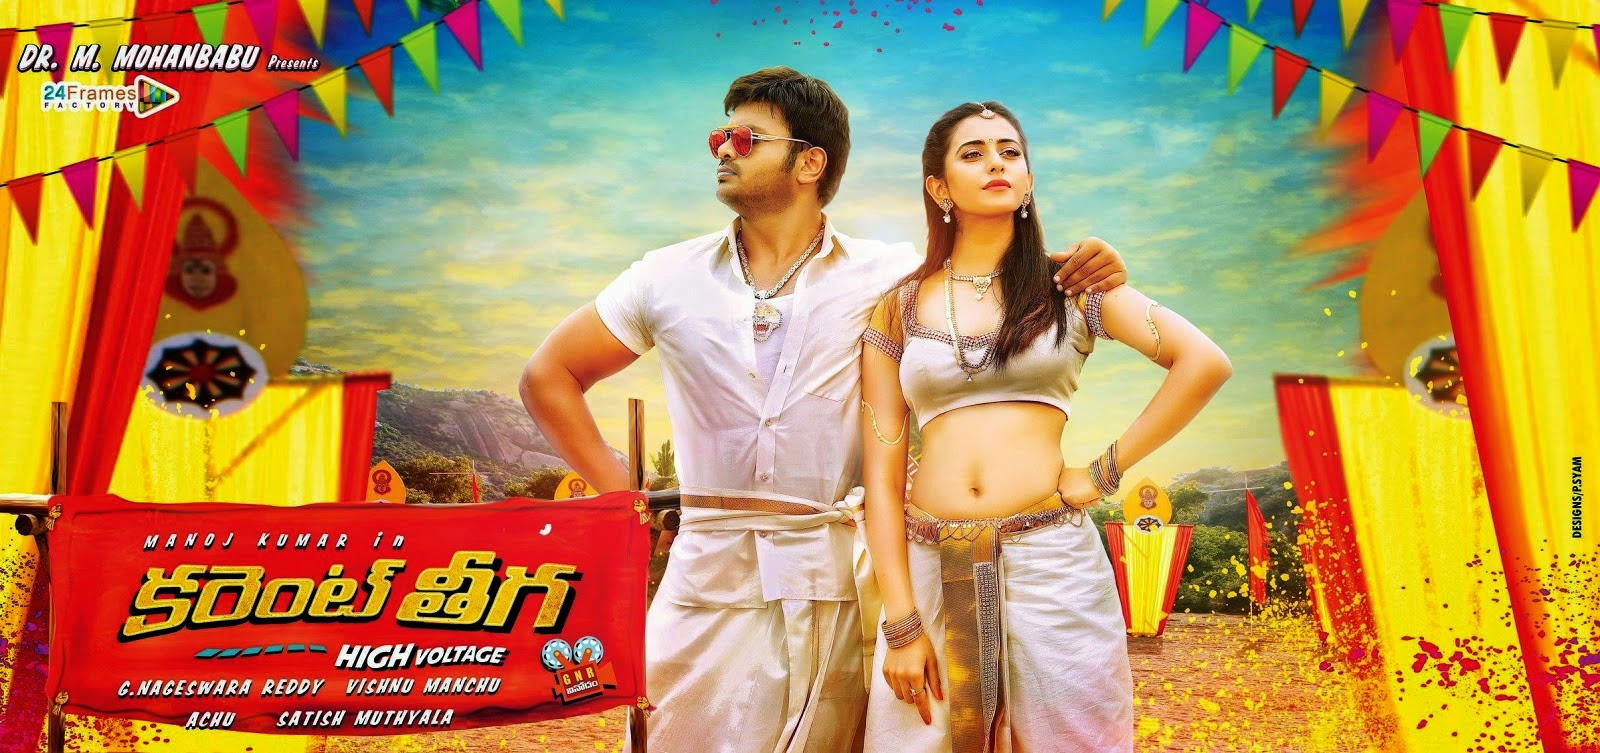 Current Theega 2014 Free Download Hd مترجم Ydkoumfih